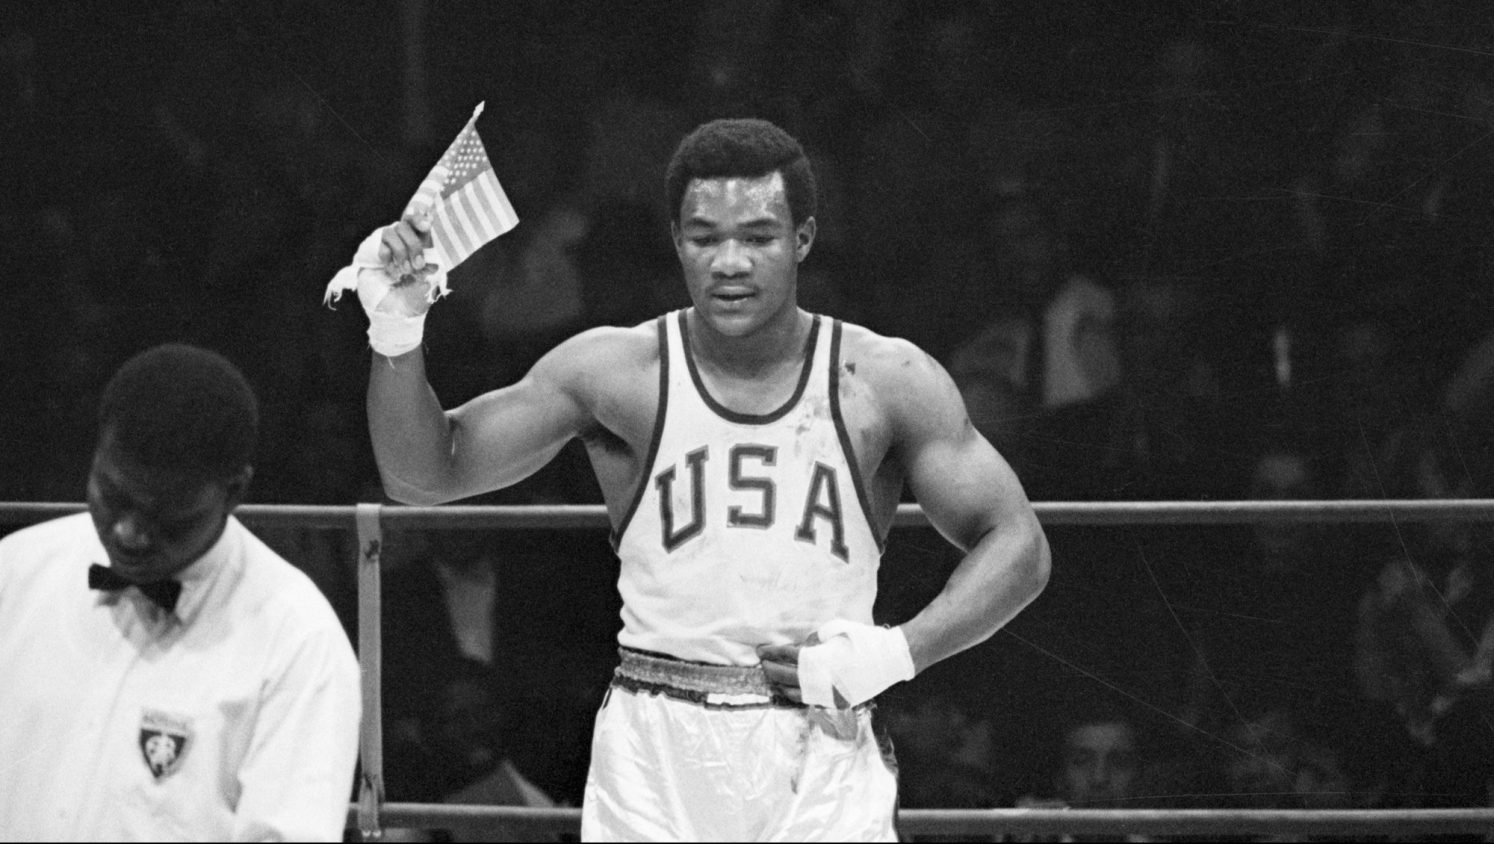 George Foreman Waves US Flag at Olympic Games